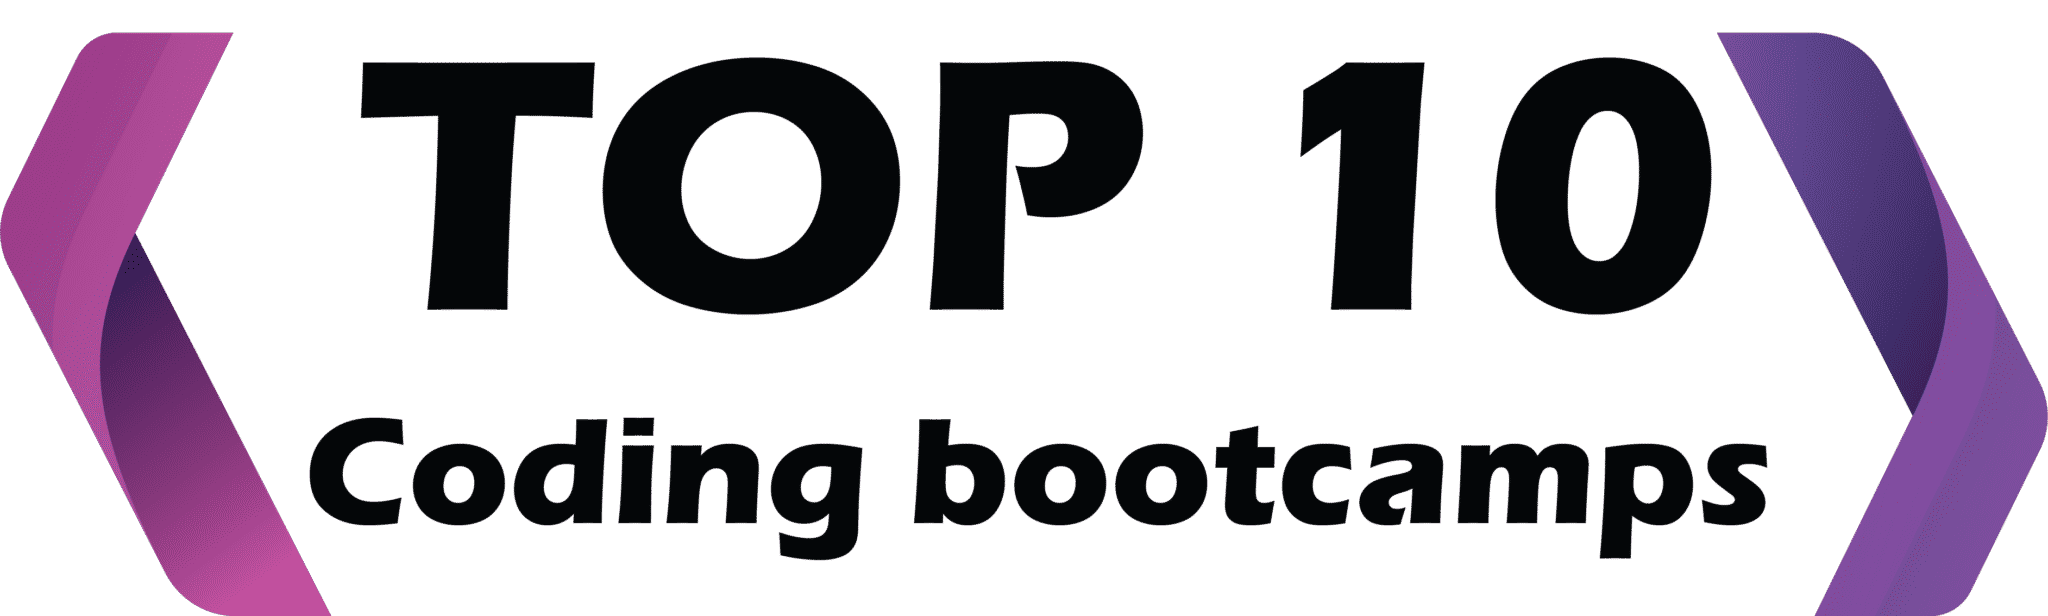 Top 10 Coding Bootcamps | Reviews of the Best Coding Bootcamps